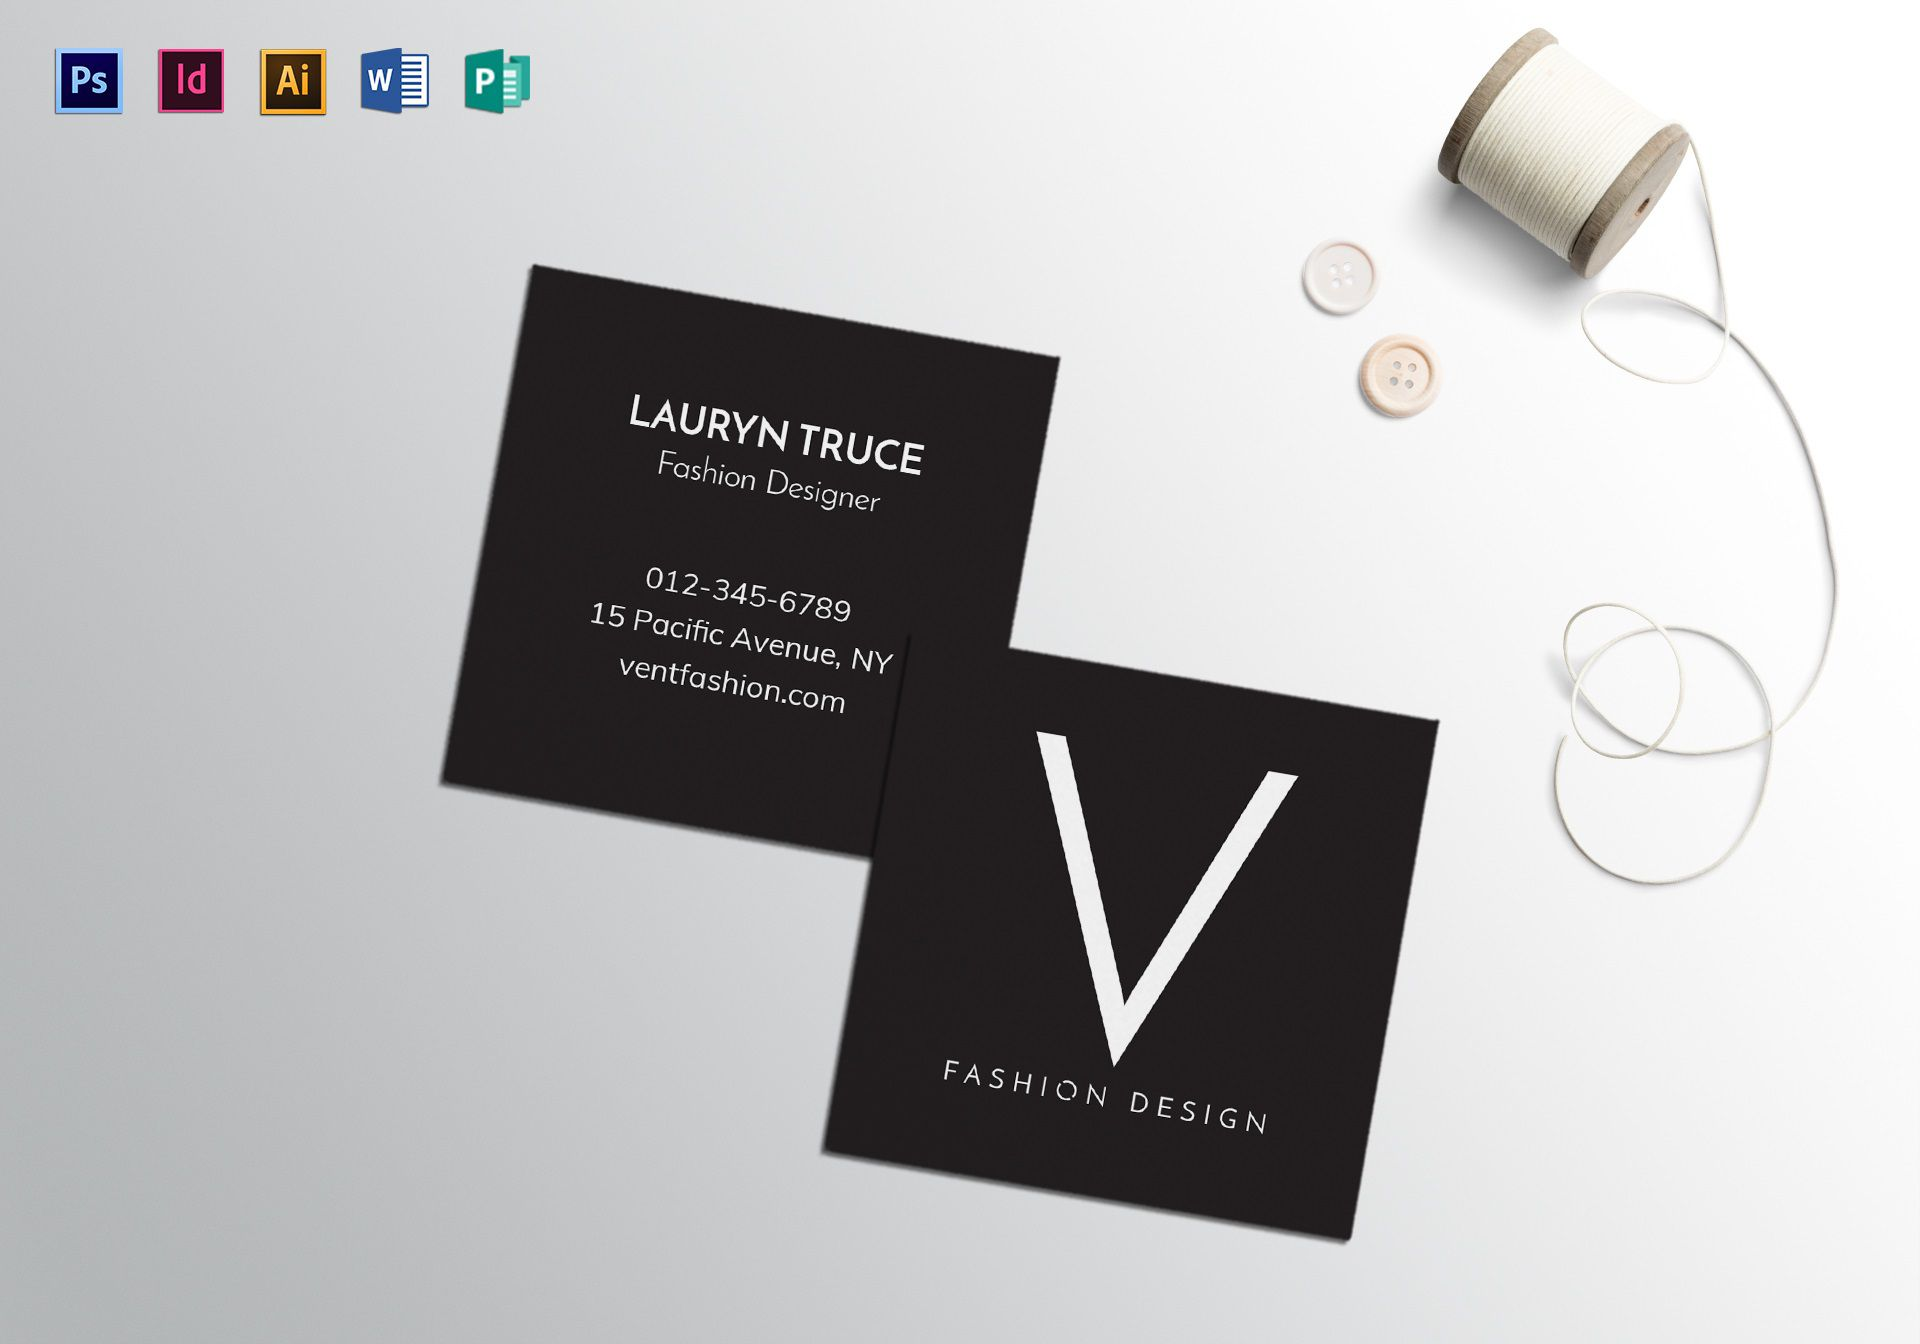 009 Outstanding Square Busines Card Template High Definition  Free Download PhotoshopFull